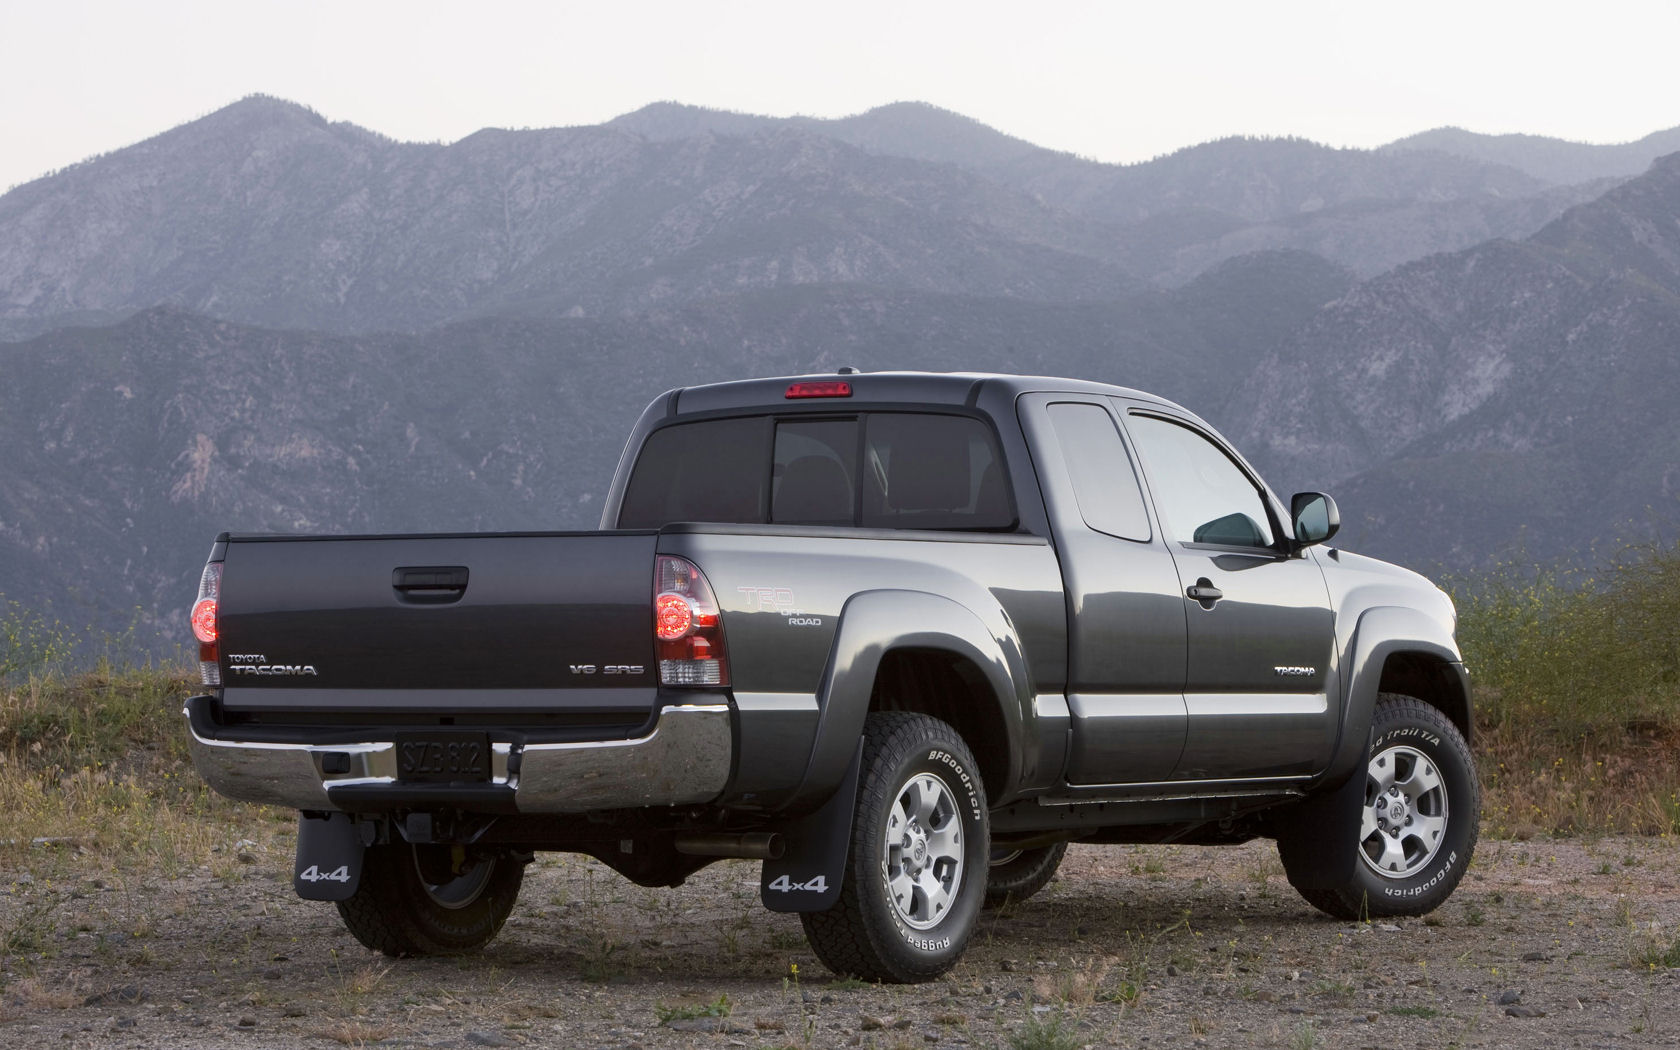 Tacoma Back Pages >> Toyota Tacoma, PreRunner, AWD, V6 - Free Widescreen Wallpaper / Desktop Background Picture